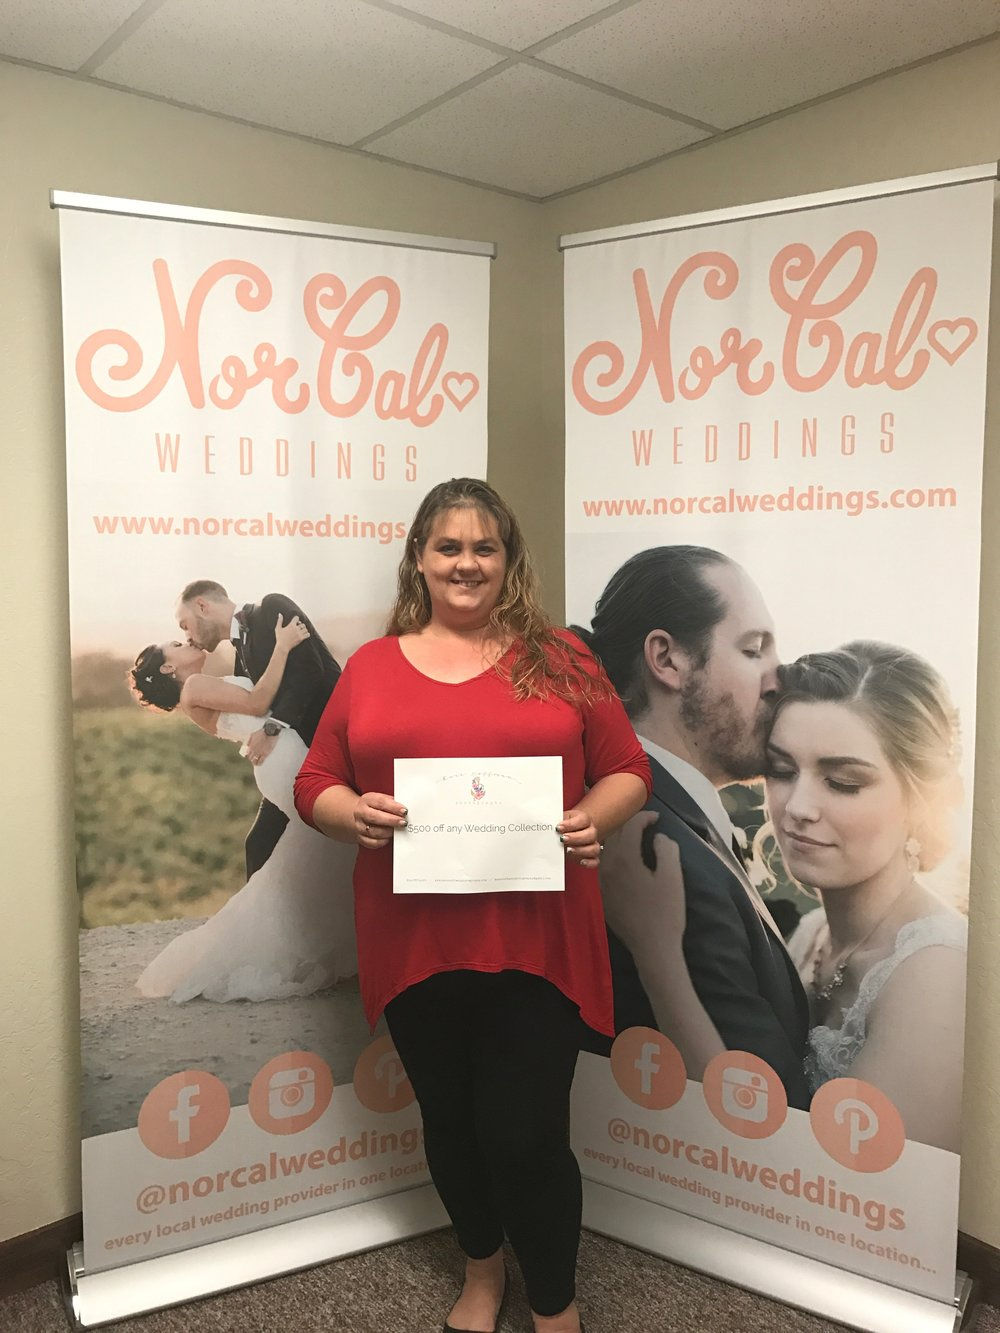 Congratulations to Jesica Thurmond and Troy Titus for being the winners of the Kara Hoffman Photography Certificate!  Jesica and Troy are planning to get married July 28, 2018 and we are so excited for them!